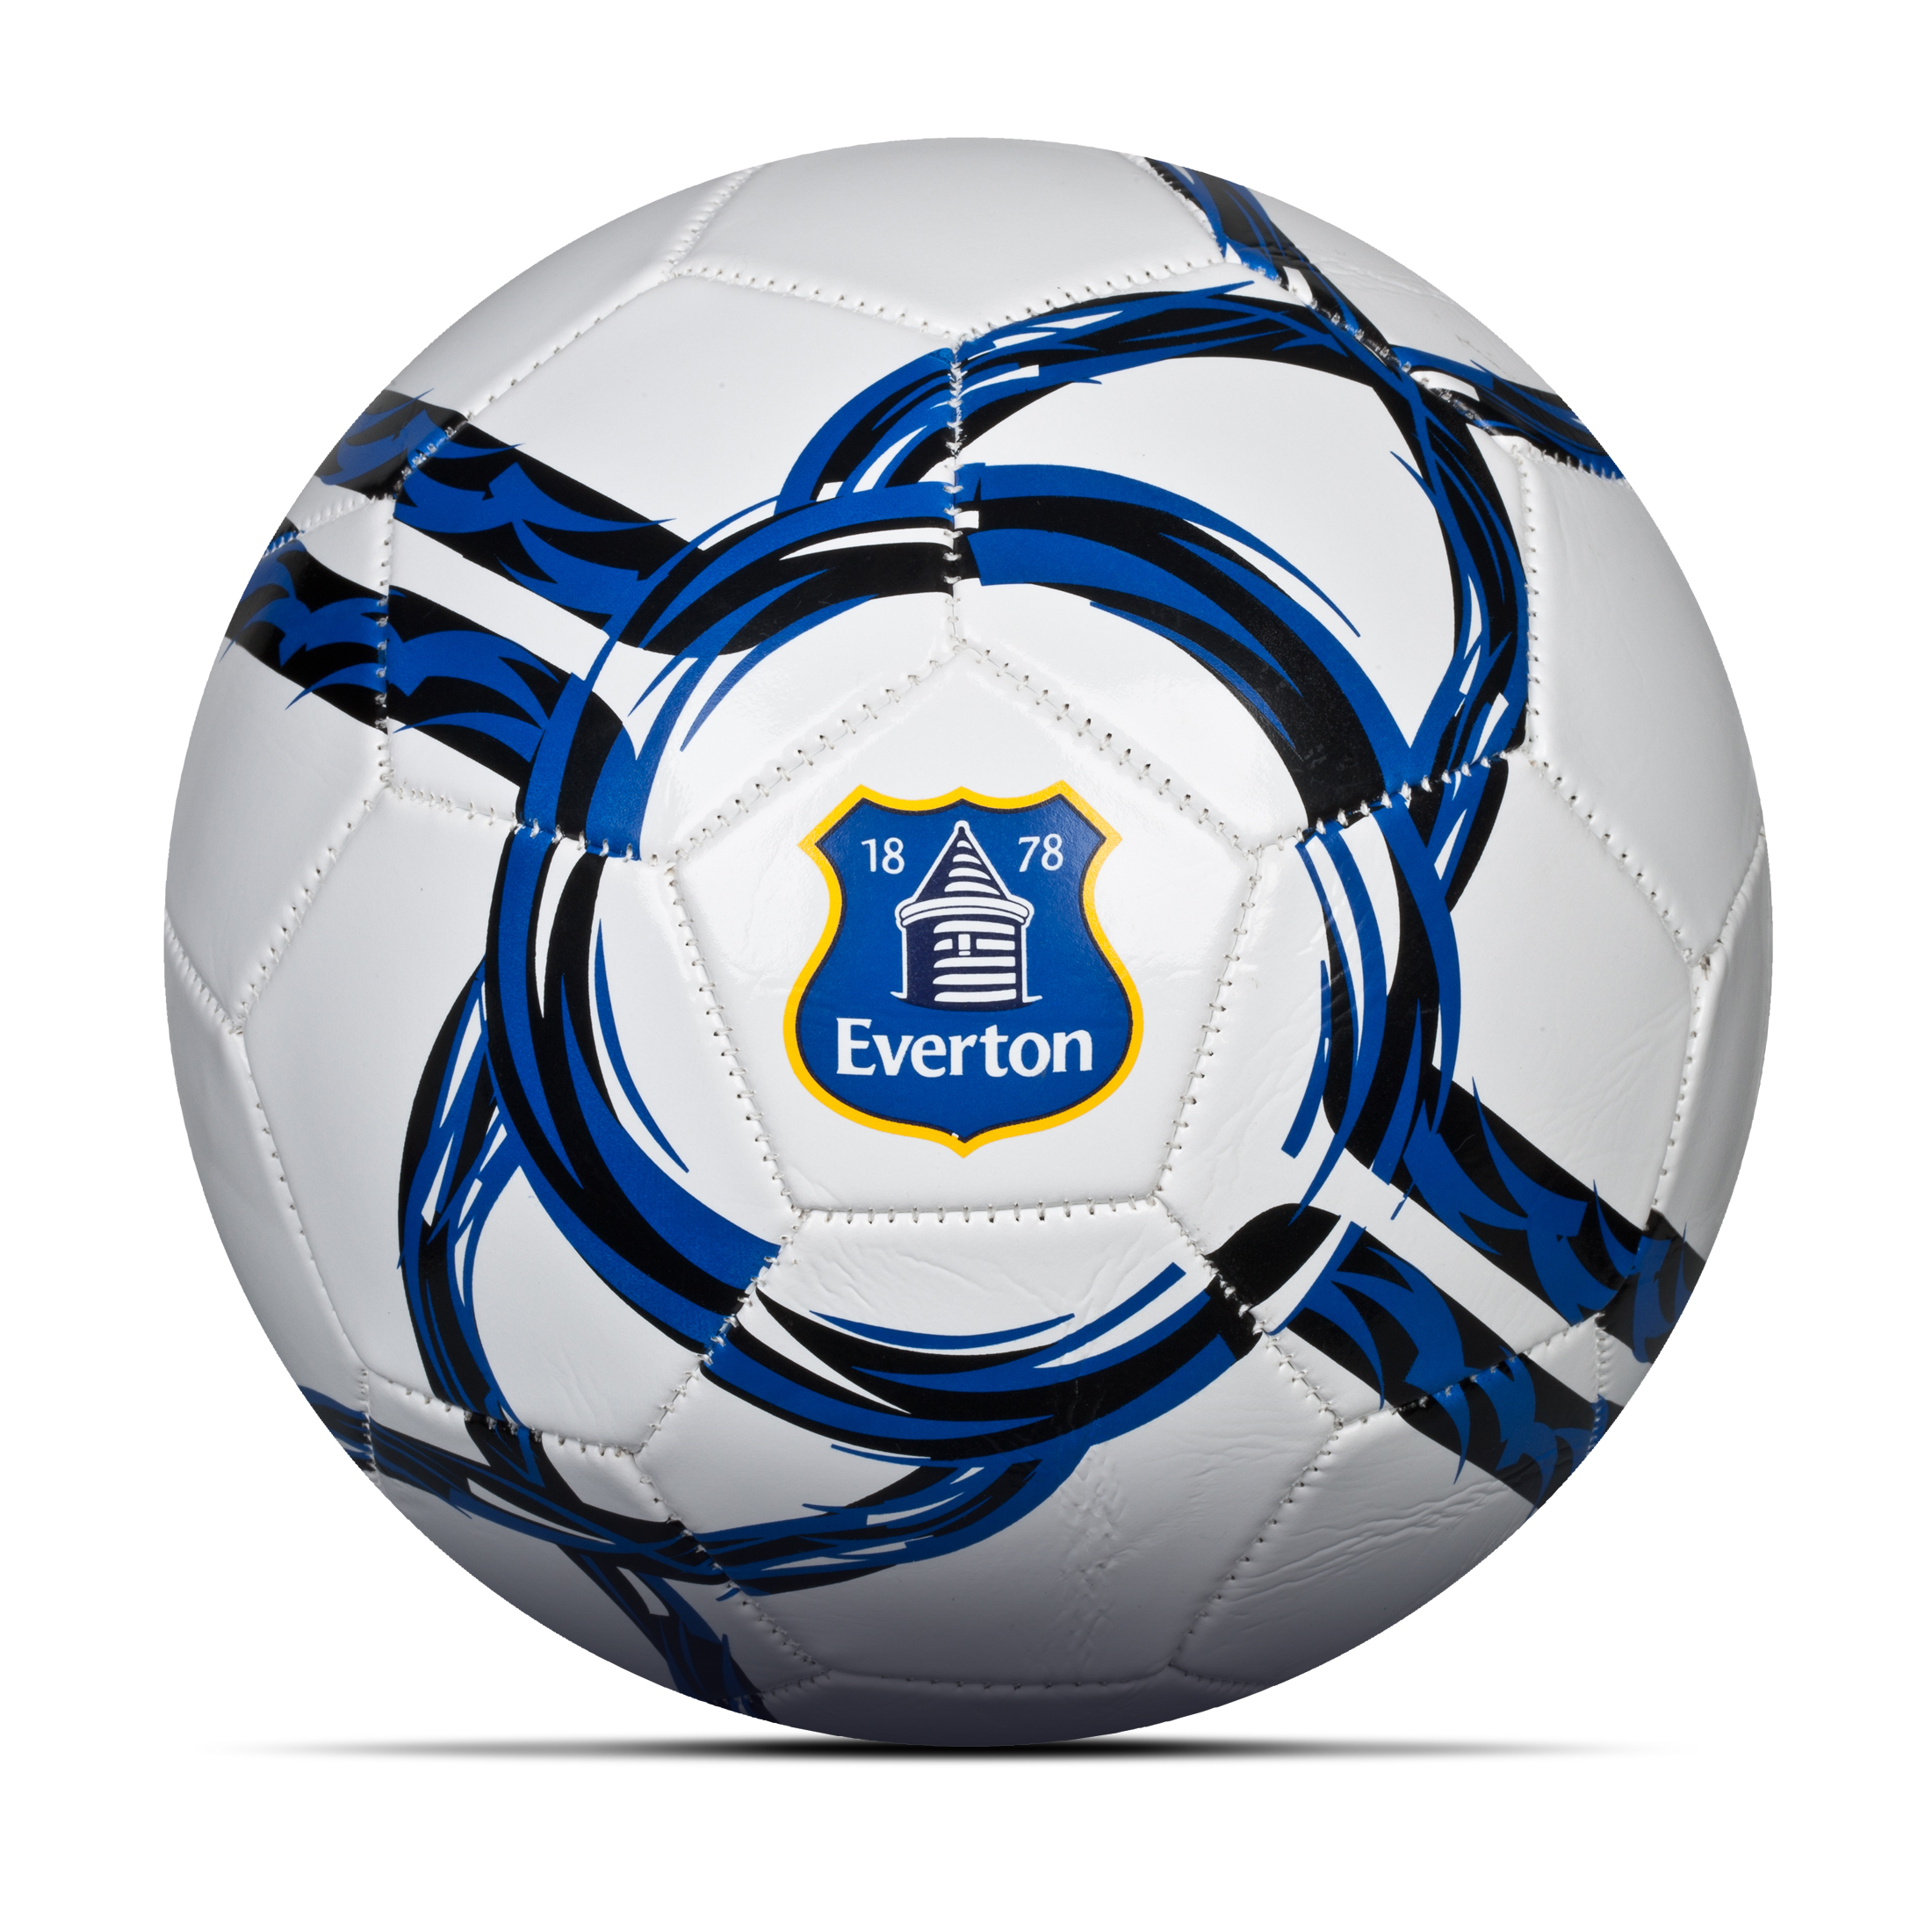 Everton Core Football - Size 5 - White